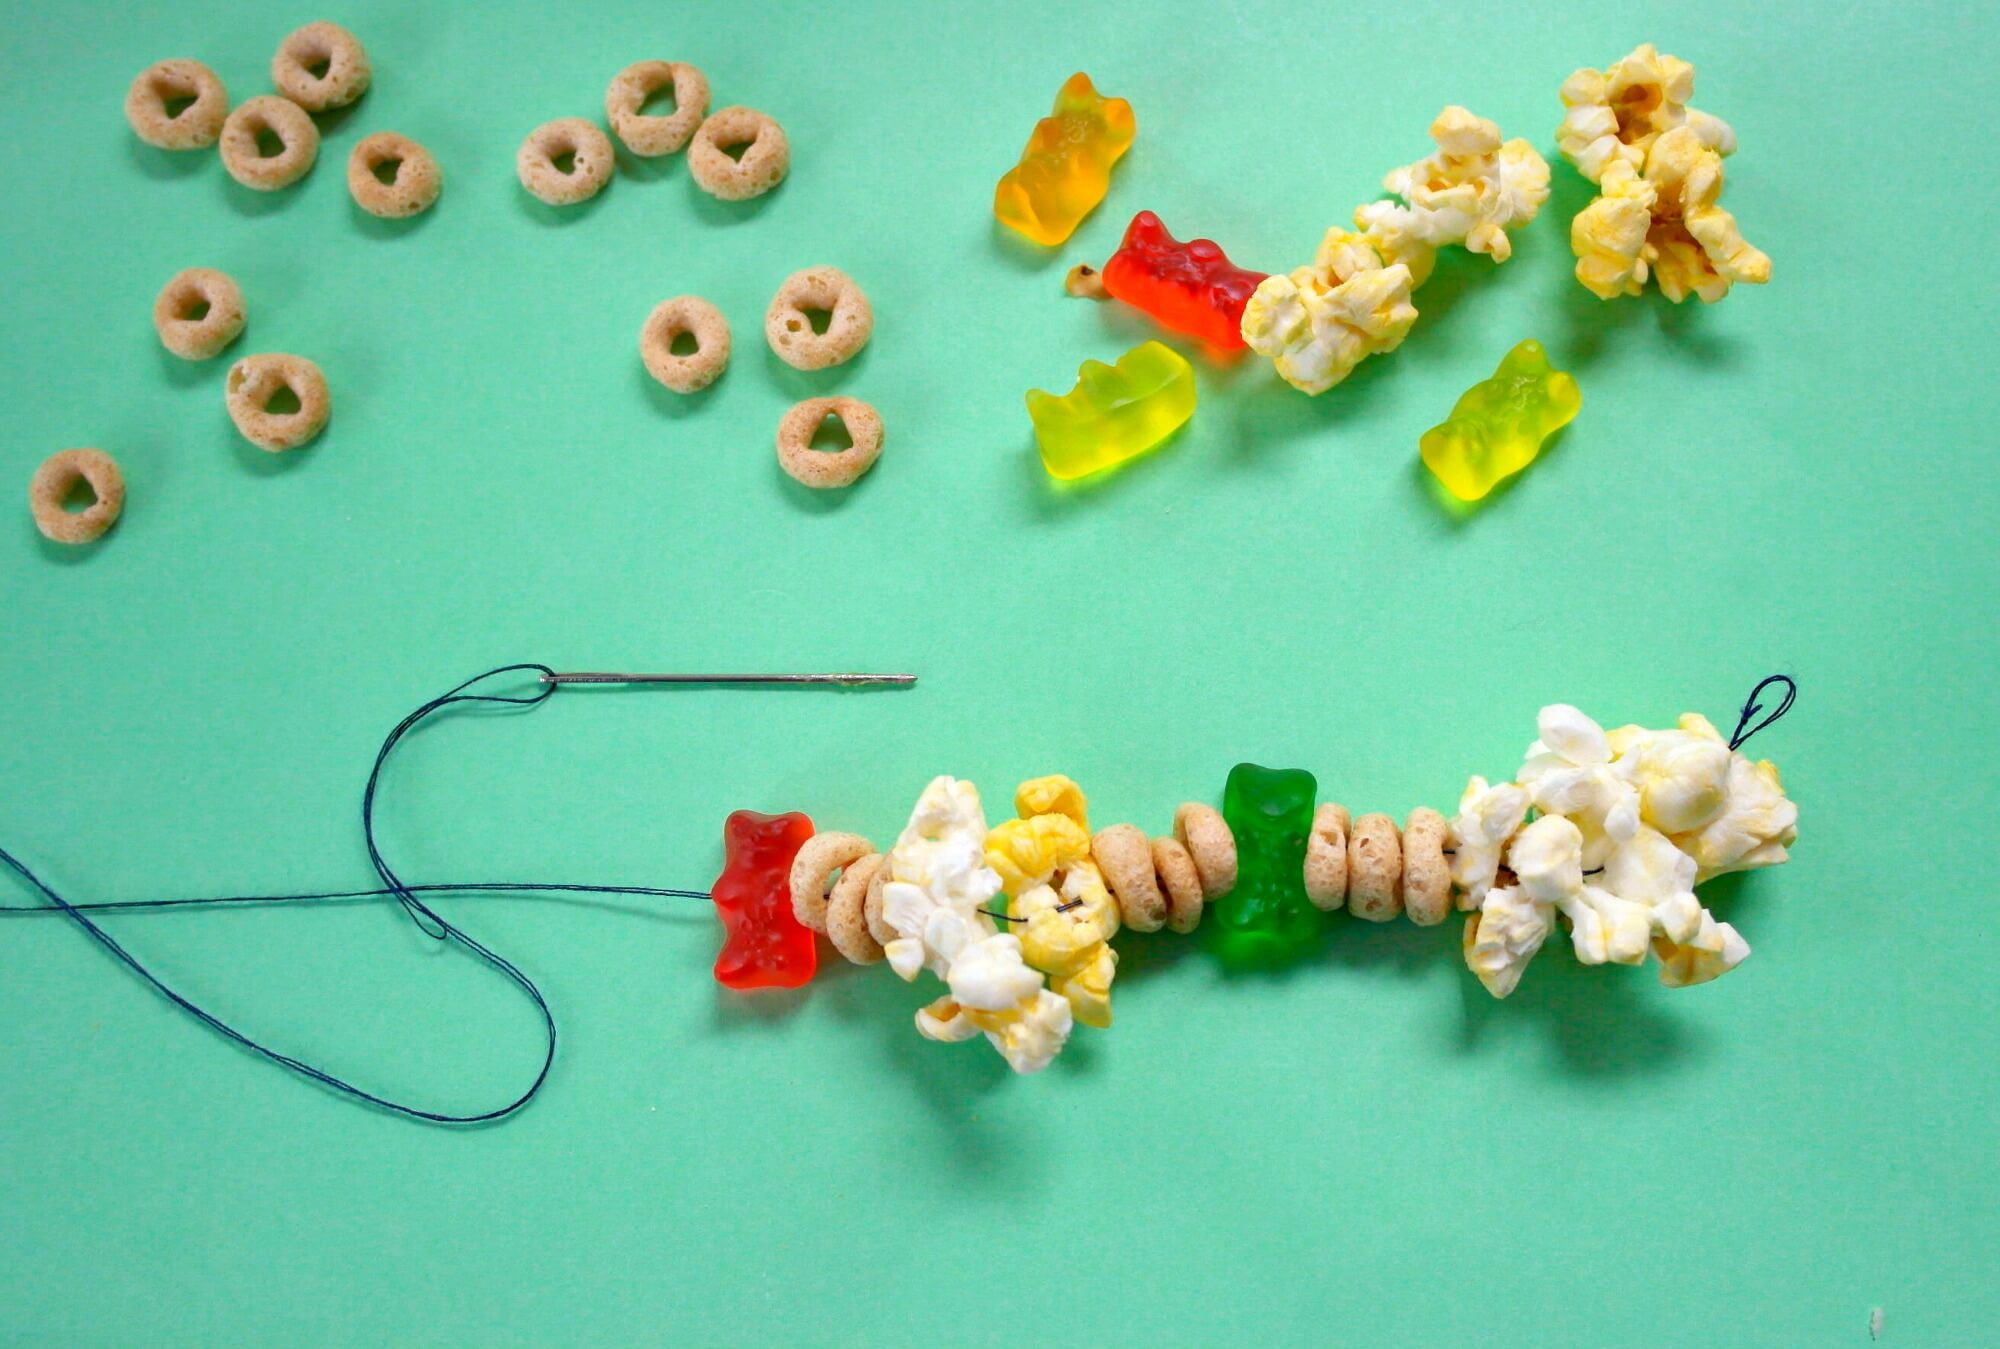 TOTS Family, Parenting, Kids, Food, Crafts, DIY and Travel popcorn-necklace-process-3 Easy Popcorn Candy Necklace Edible Craft Crafts Holiday Treats Kids TOTS Family  Popcorn Candy Necklace Edible Craft